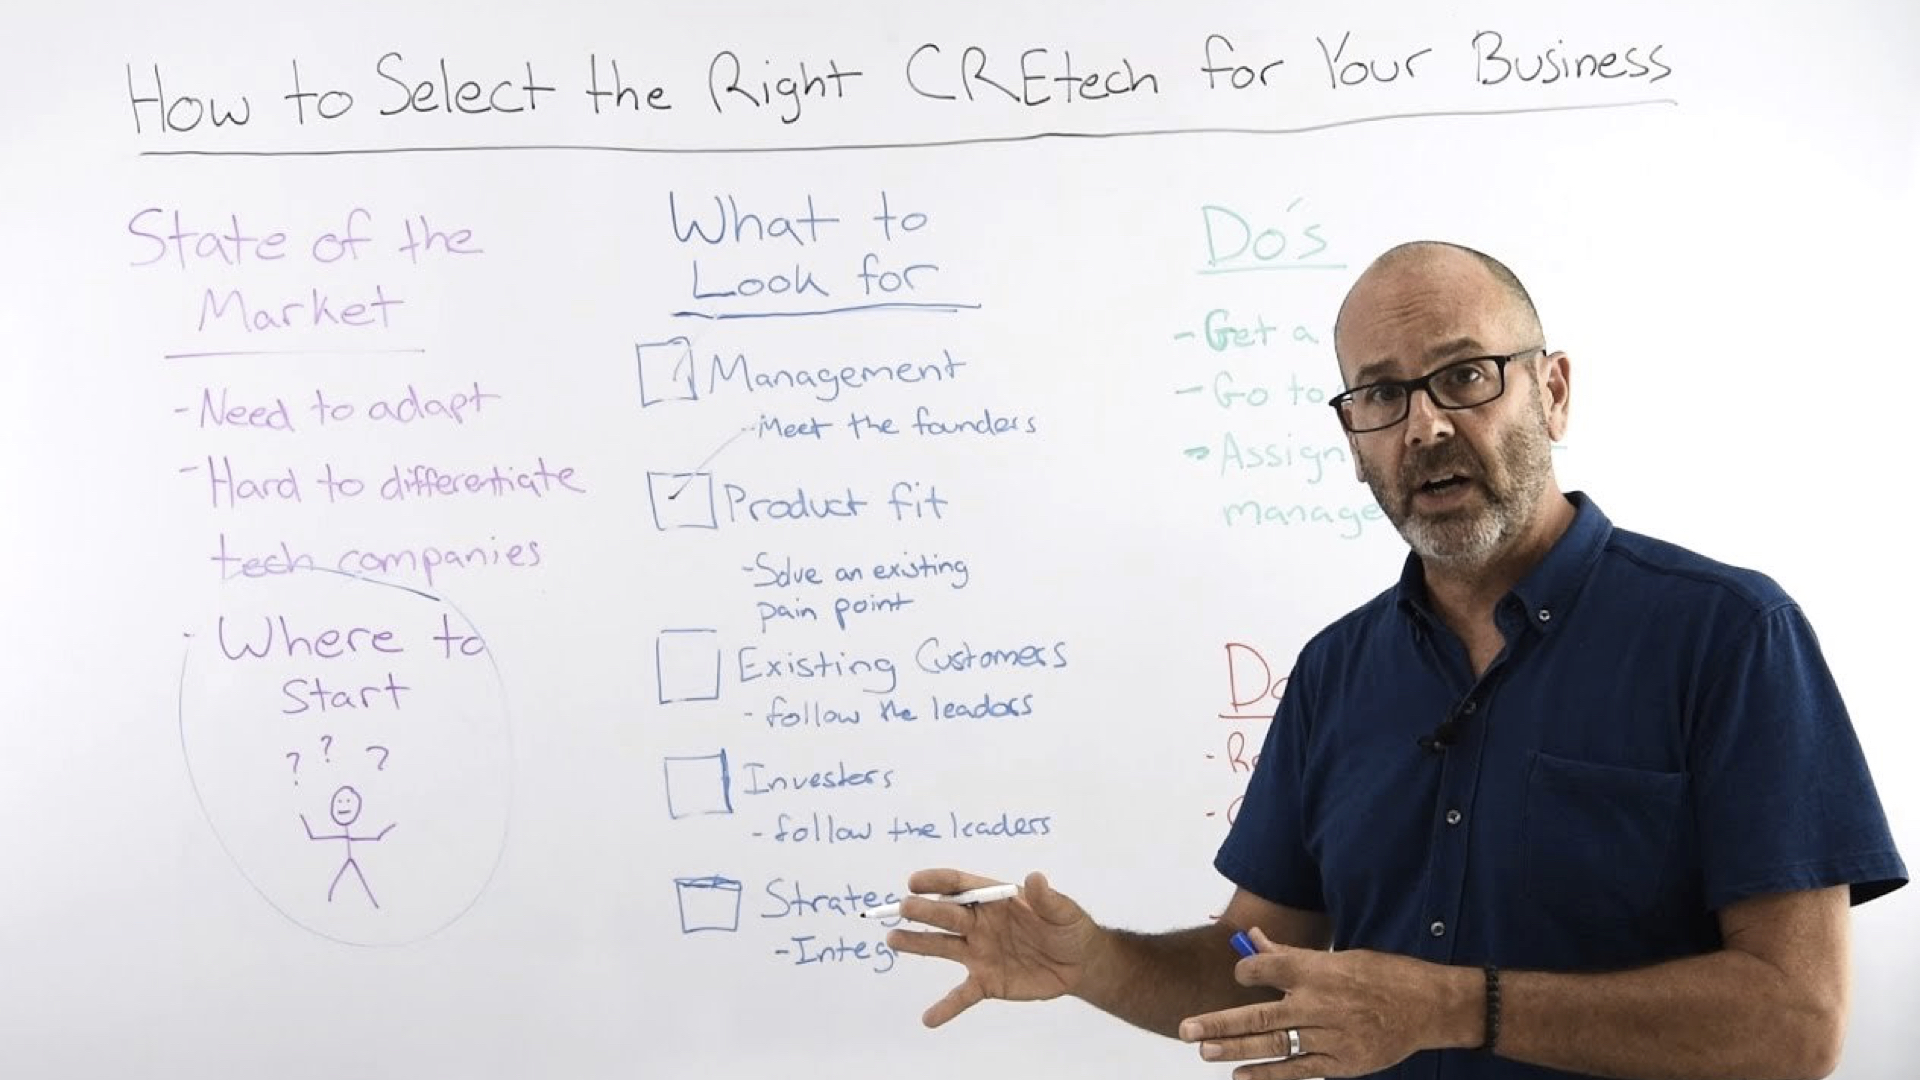 8. How to Select the Right CRETech for Your Business